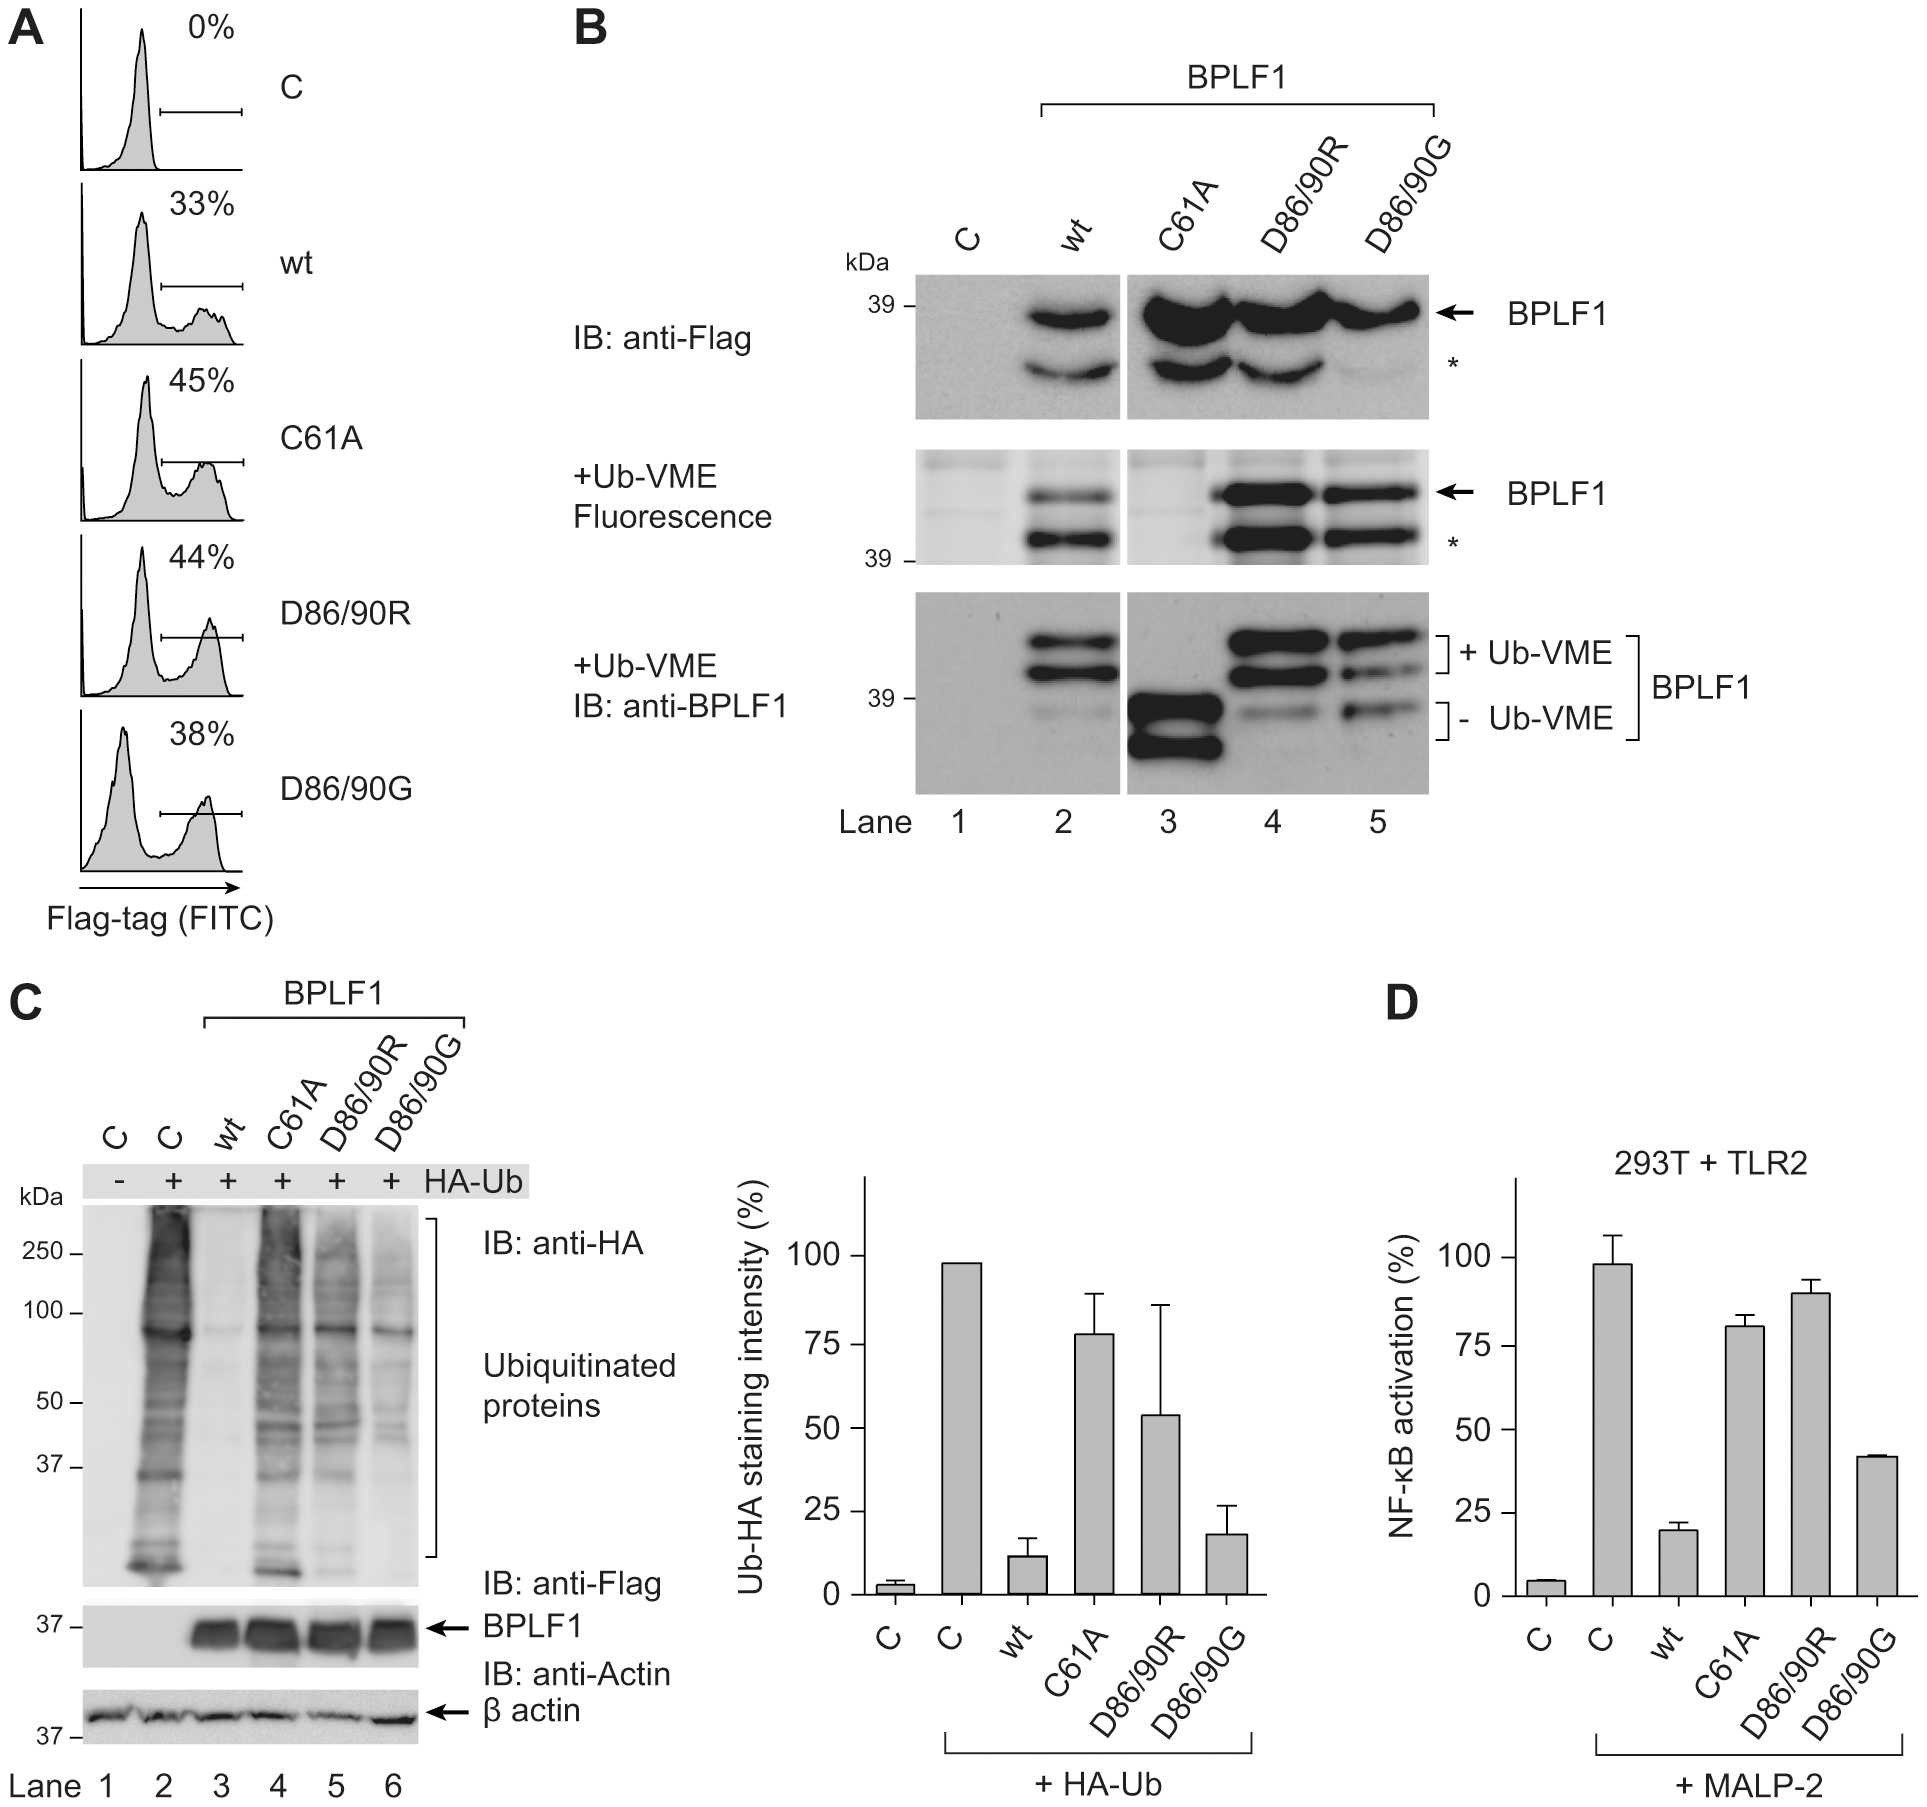 BPLF1-mediated modulation of TLR signaling correlates with deubiquitinase activity.